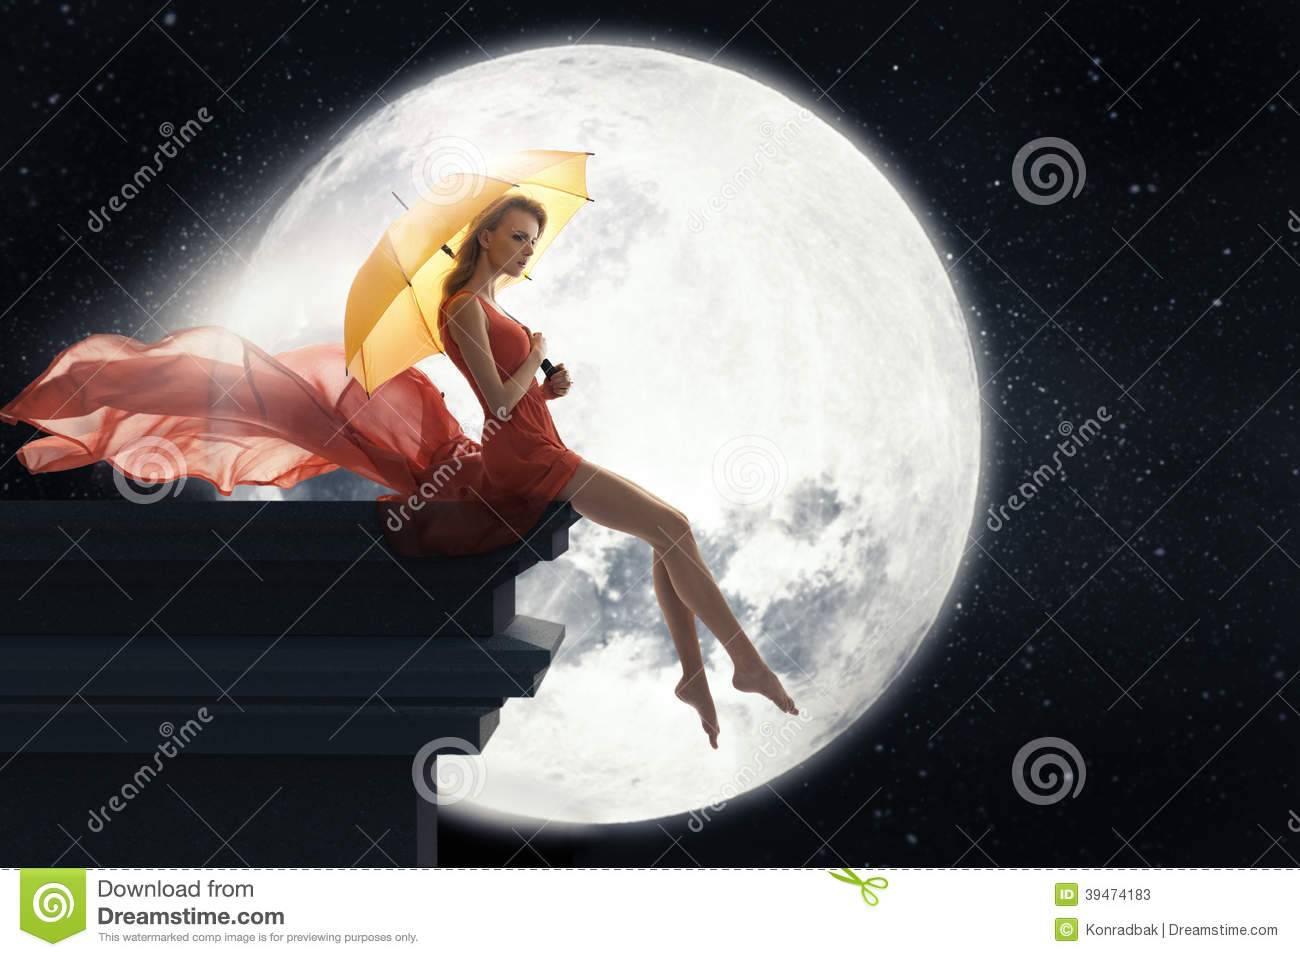 Cute Girl Cartoon Wallpaper Free Download Woman With Umbrella Over Full Moon Background Stock Photo